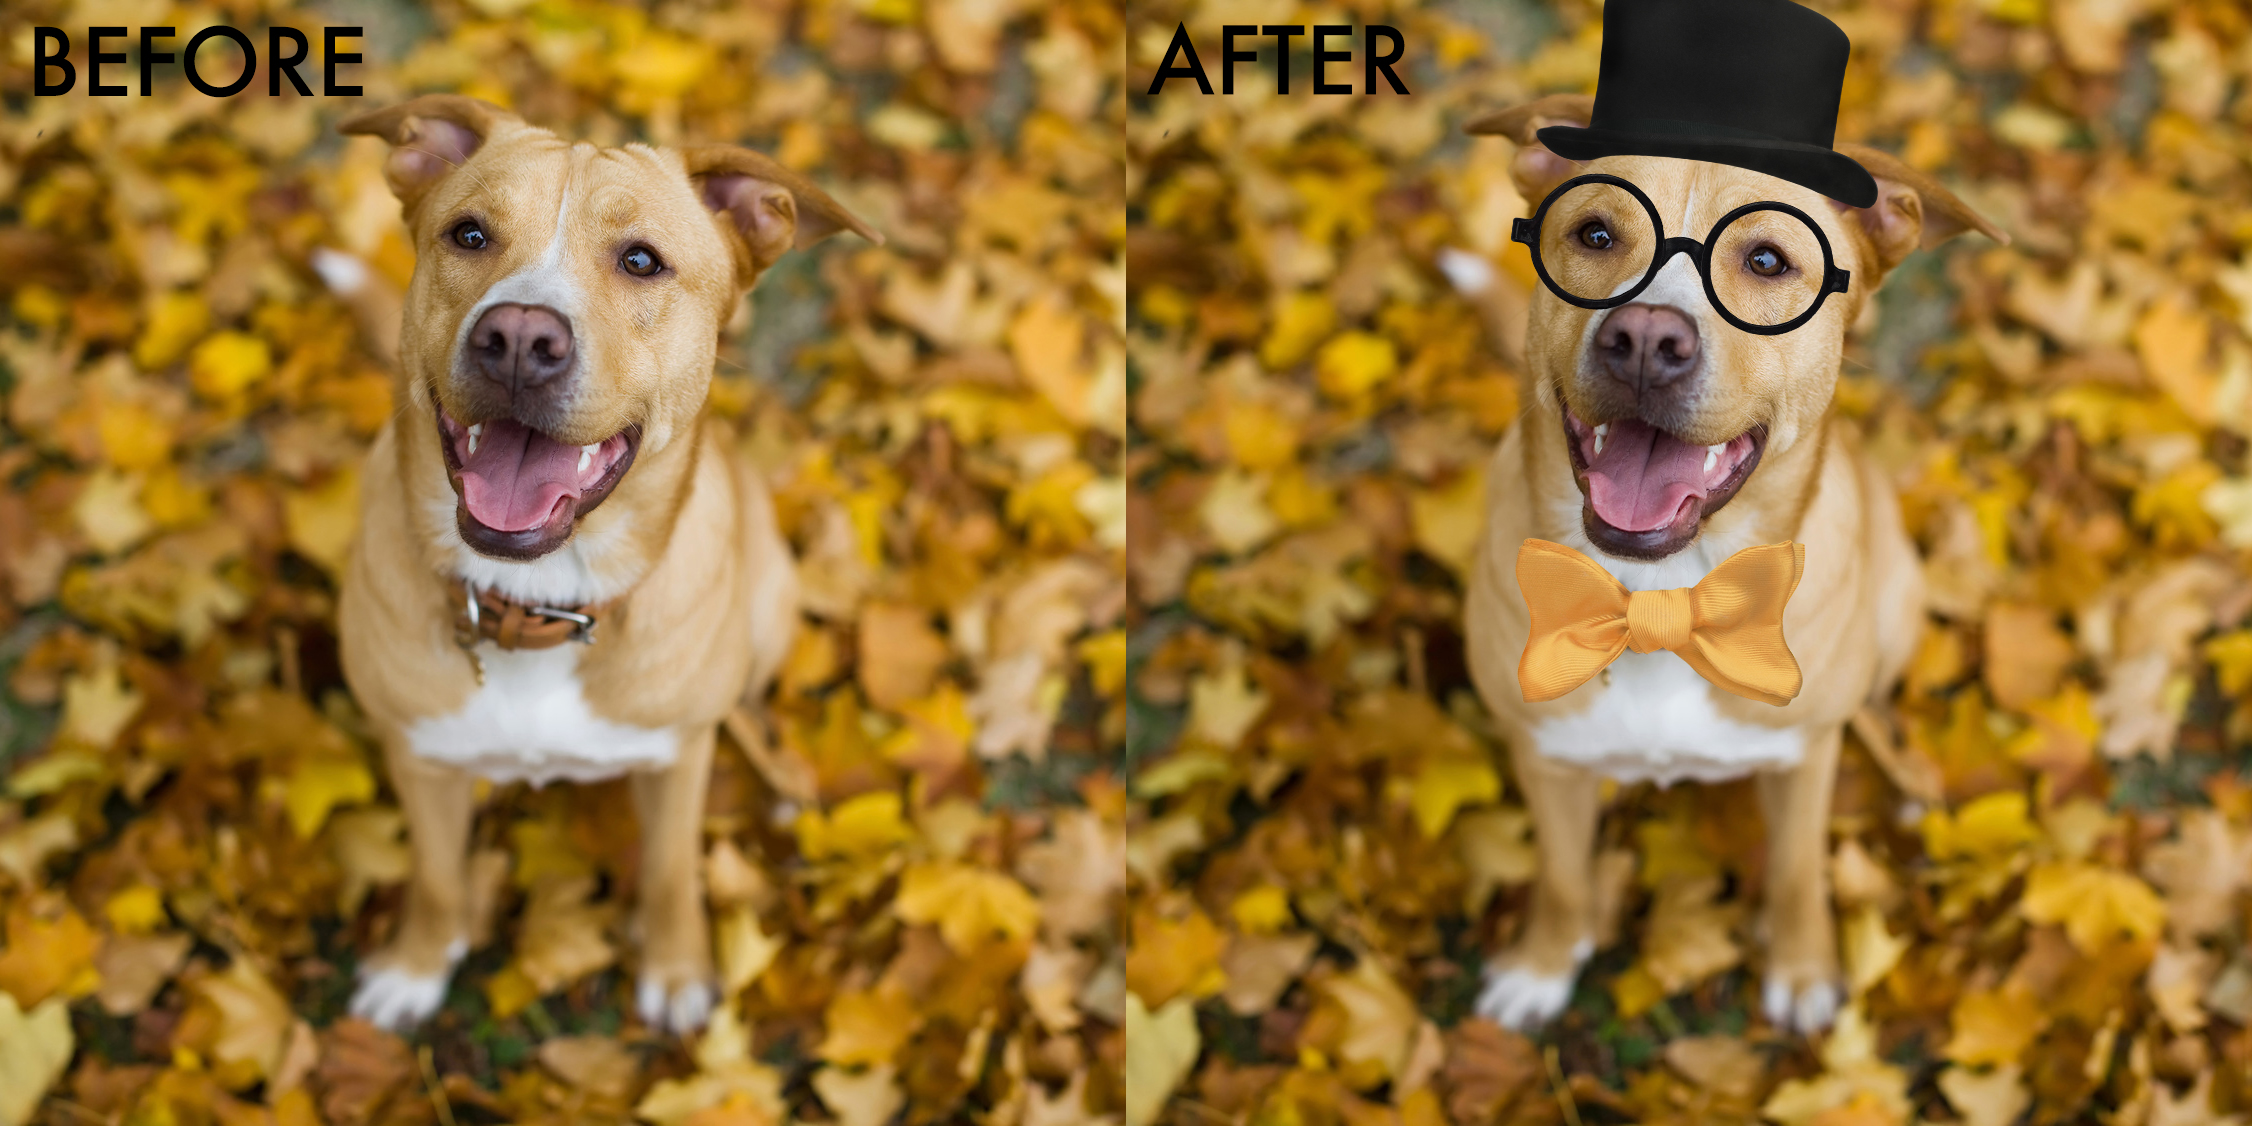 halloween dog before and aftr.jpg